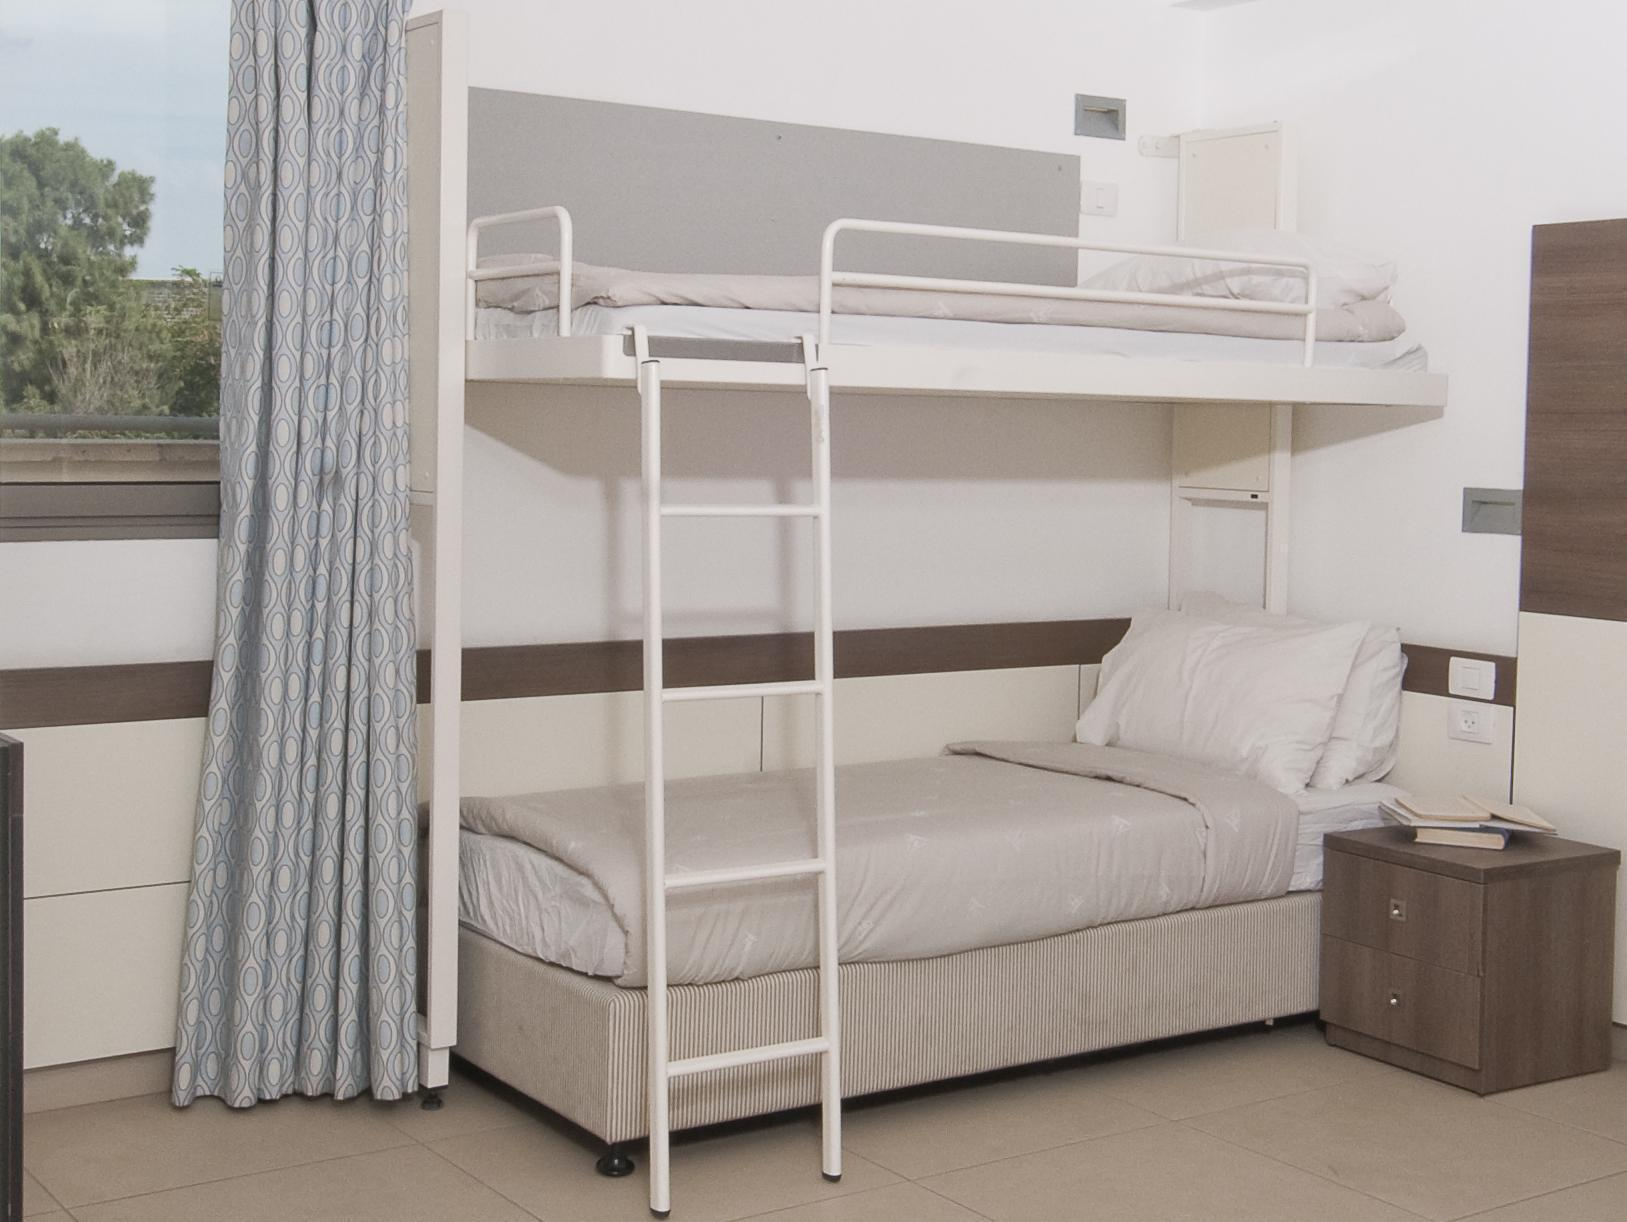 Einzelbett in Frauen Schlafsaal (Single Bed in Female Dormitory Room)